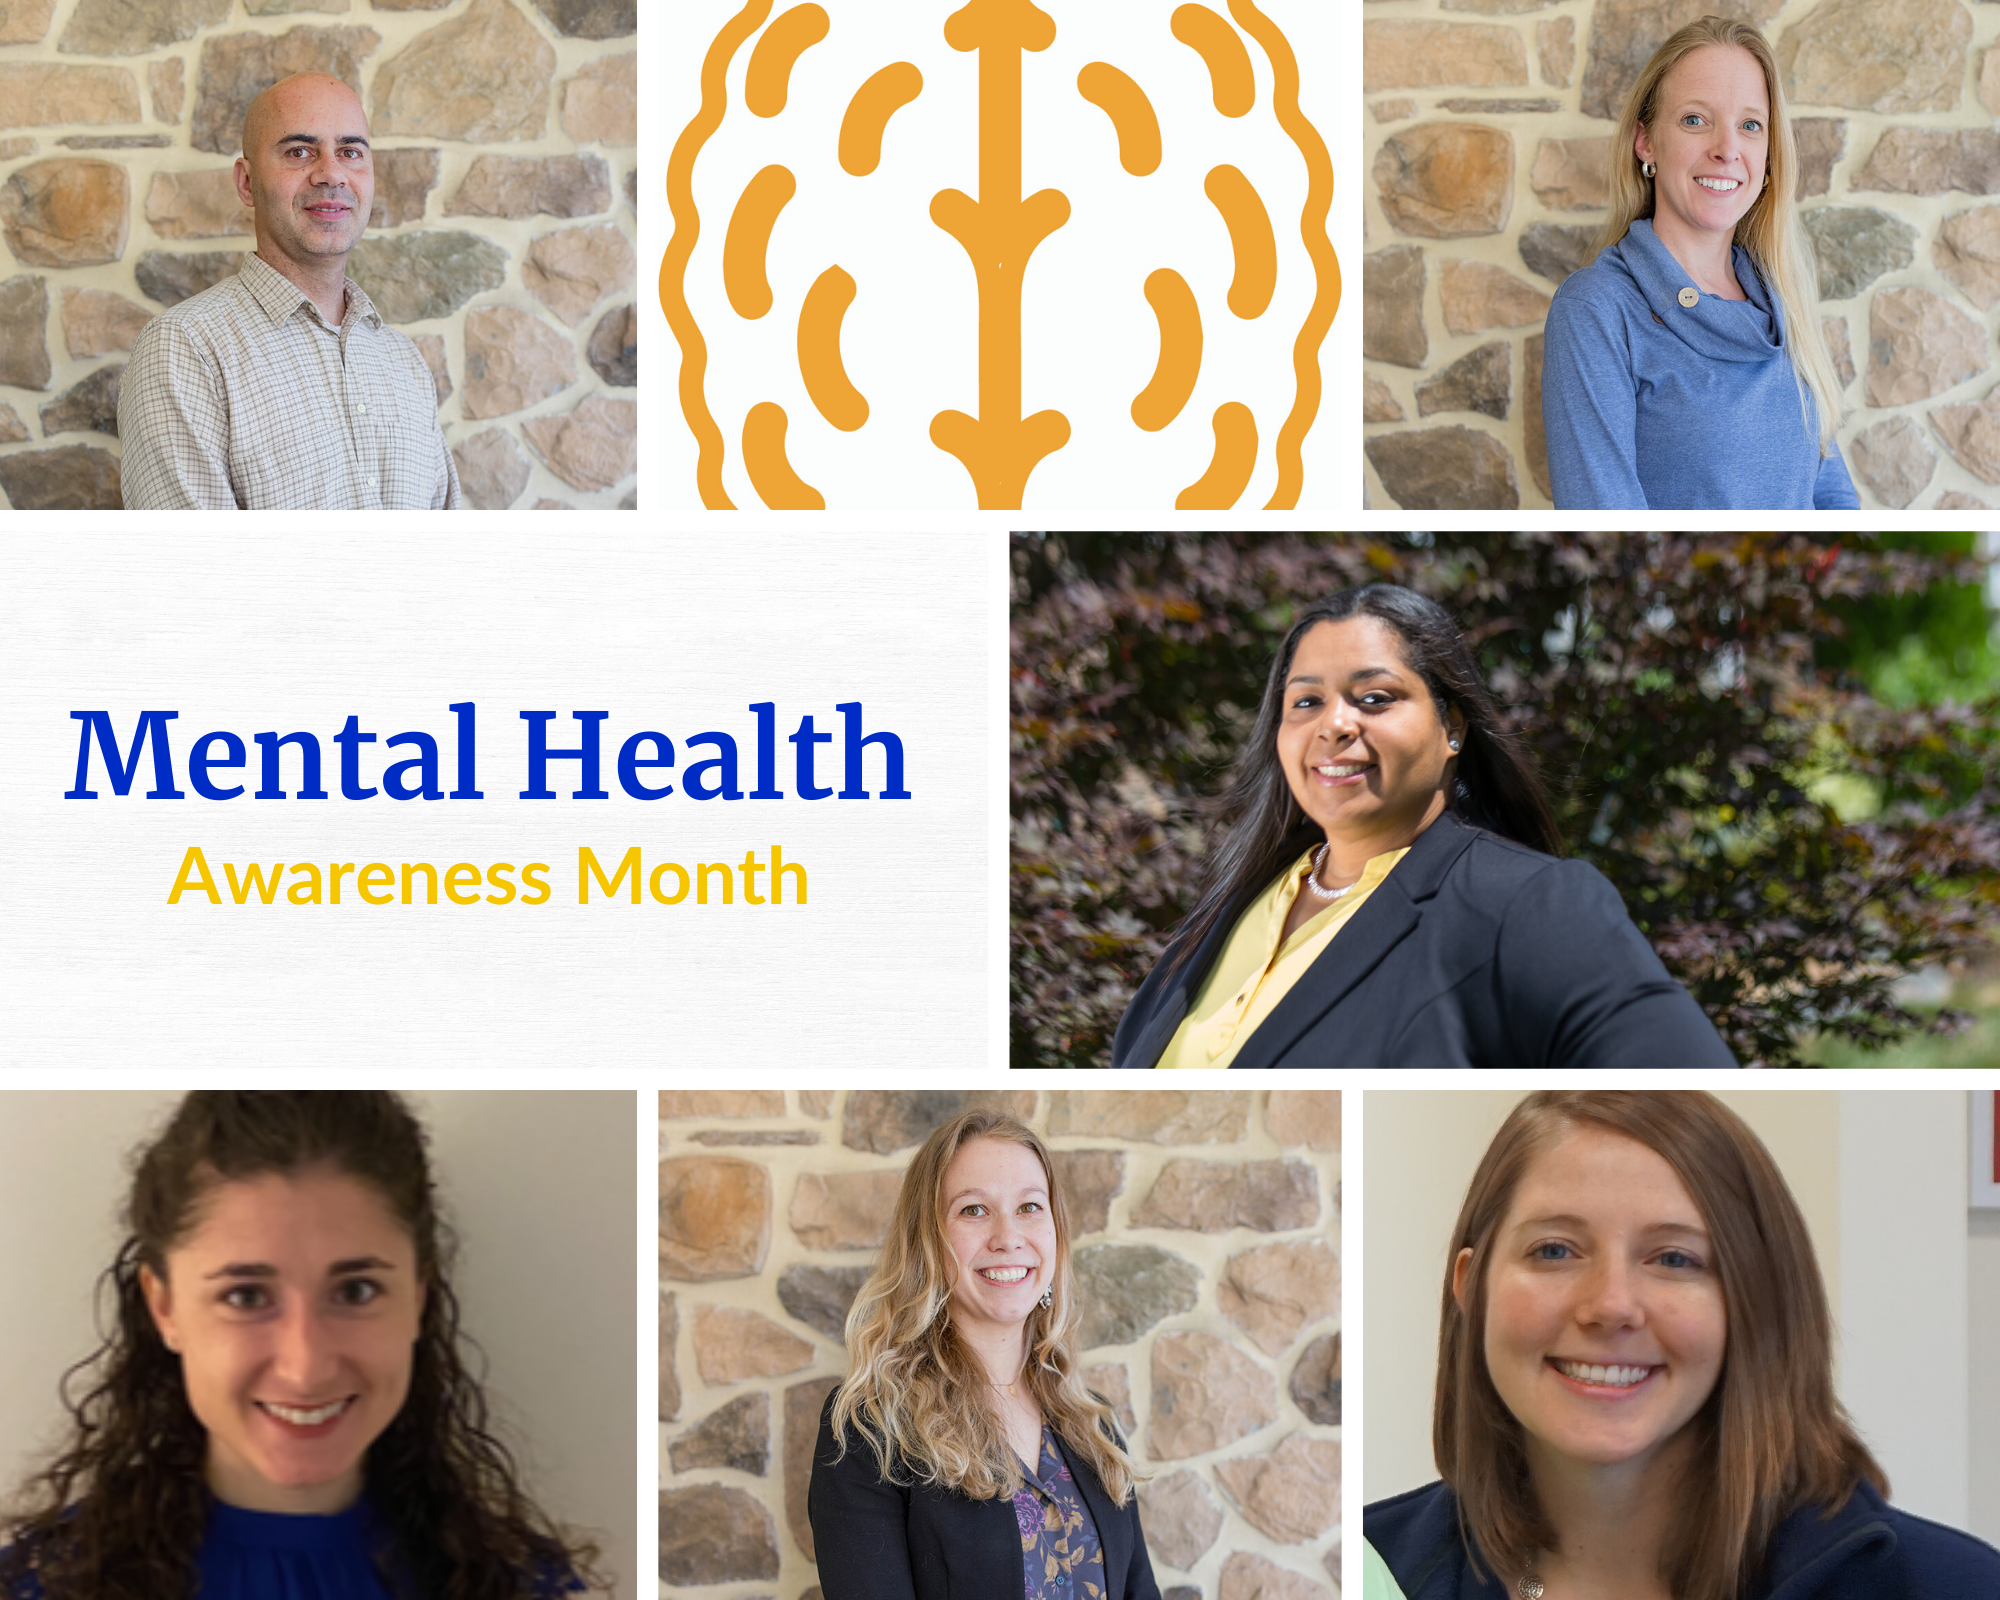 LCH Expands Behavioral Health Team; New Staff, Technology to Provide More Access to Care